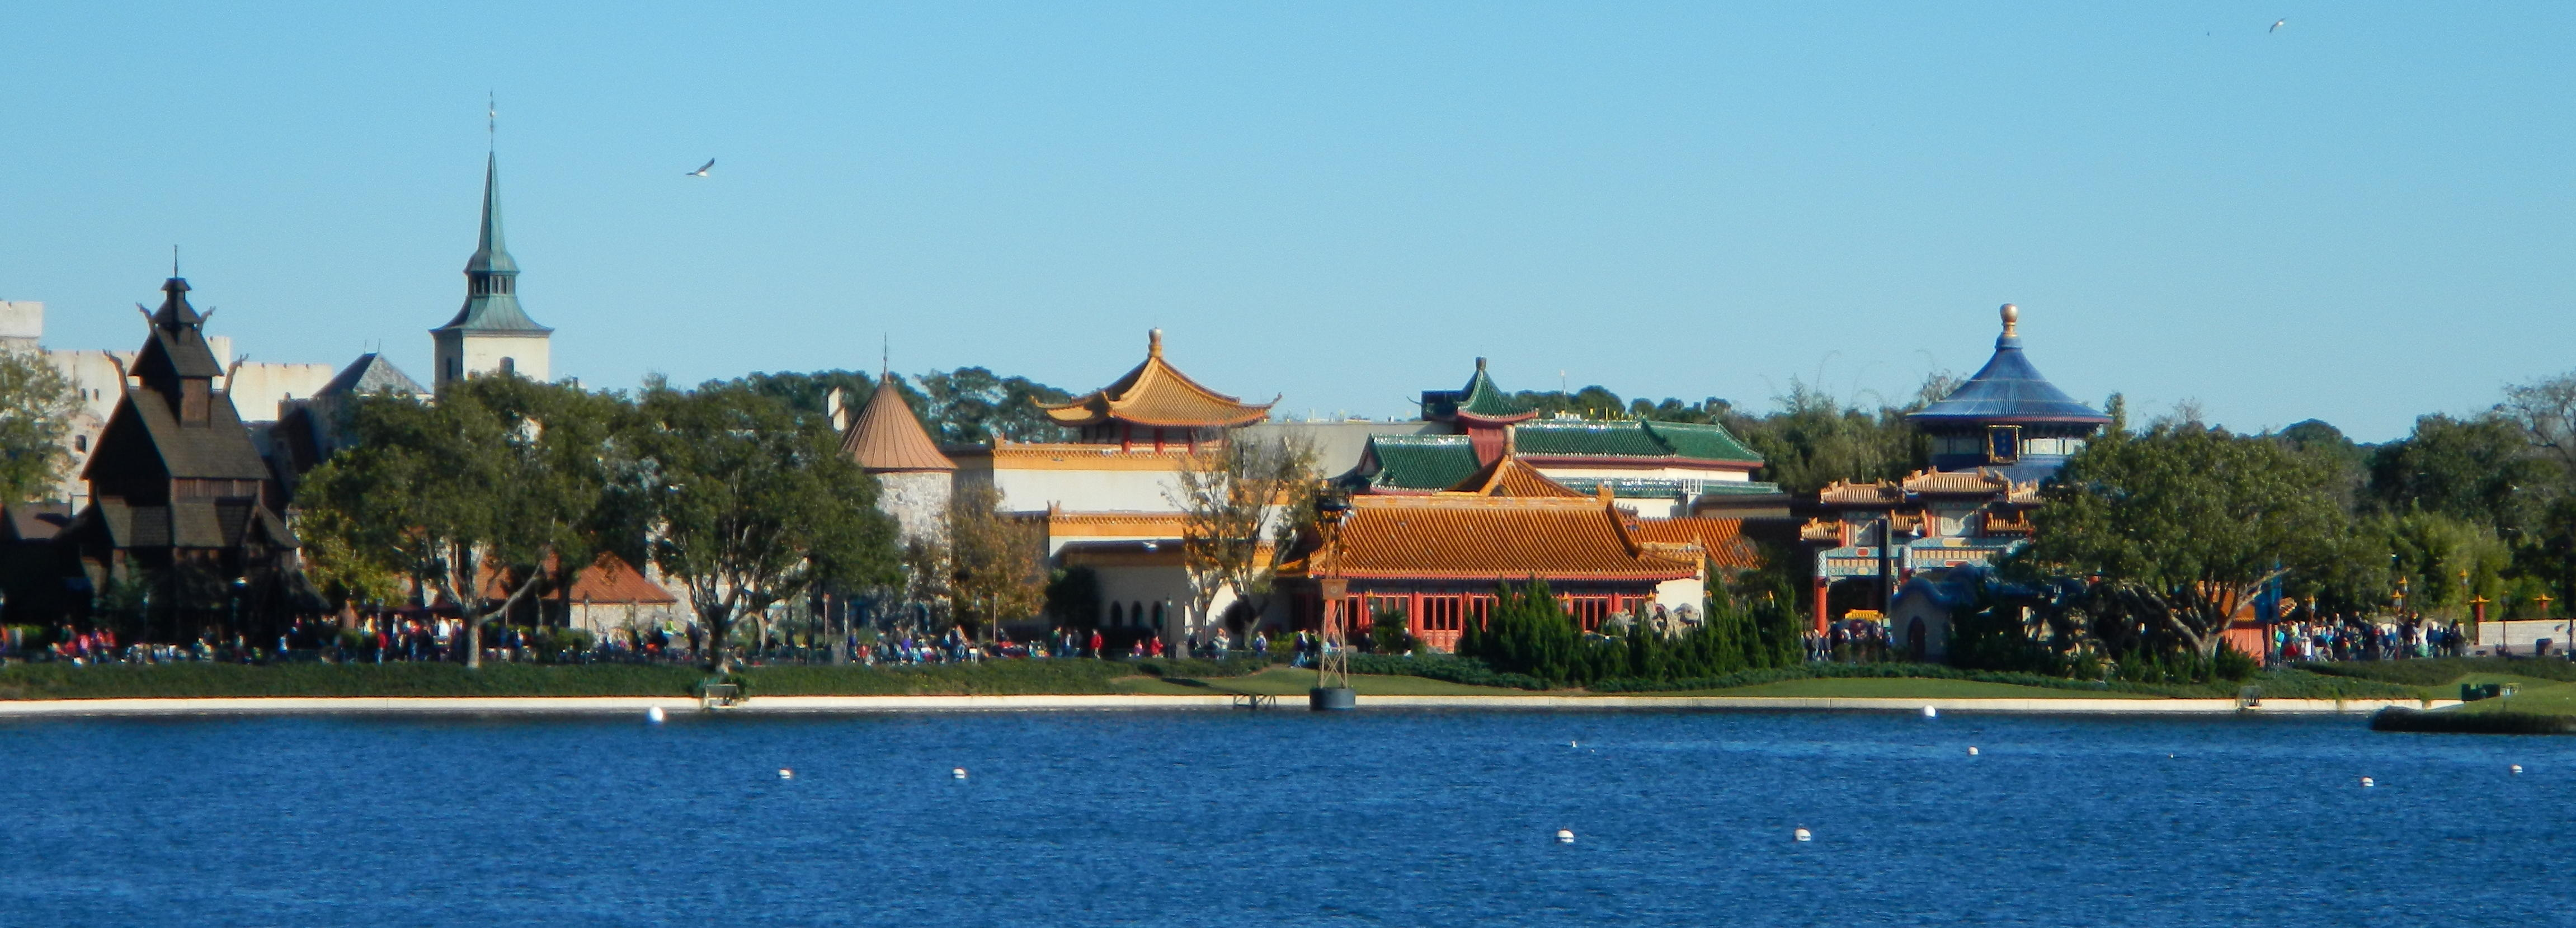 Misc - Epcot - China and Norway